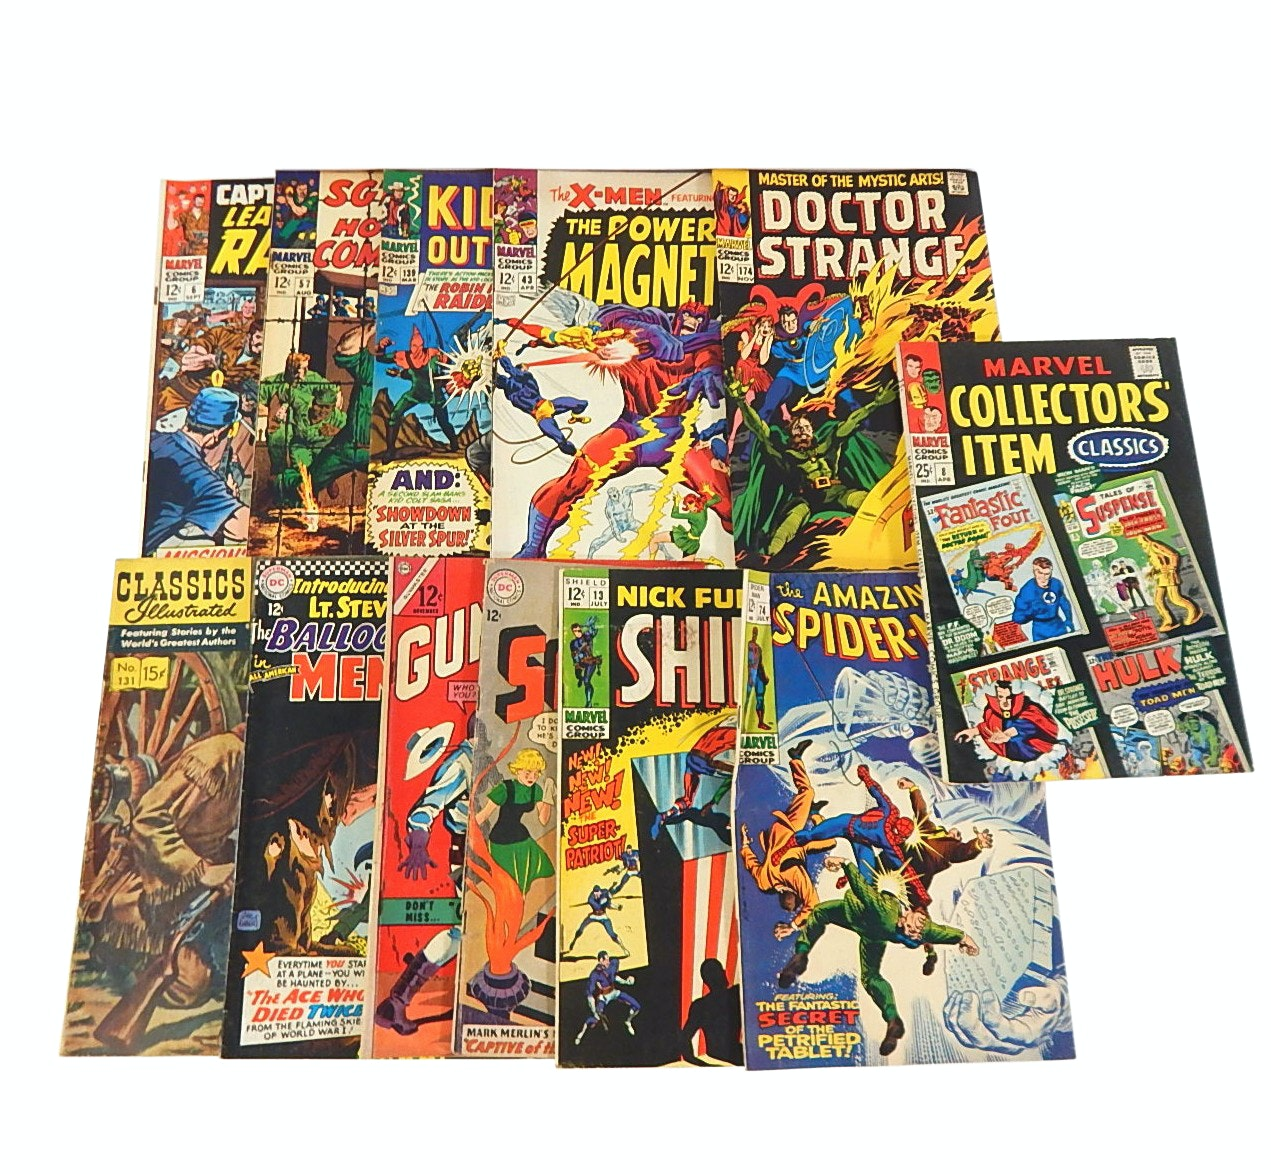 Silver Age Marvel, DC Comics 12 Cent Comic Books with Spider-Man, Dr. Strange